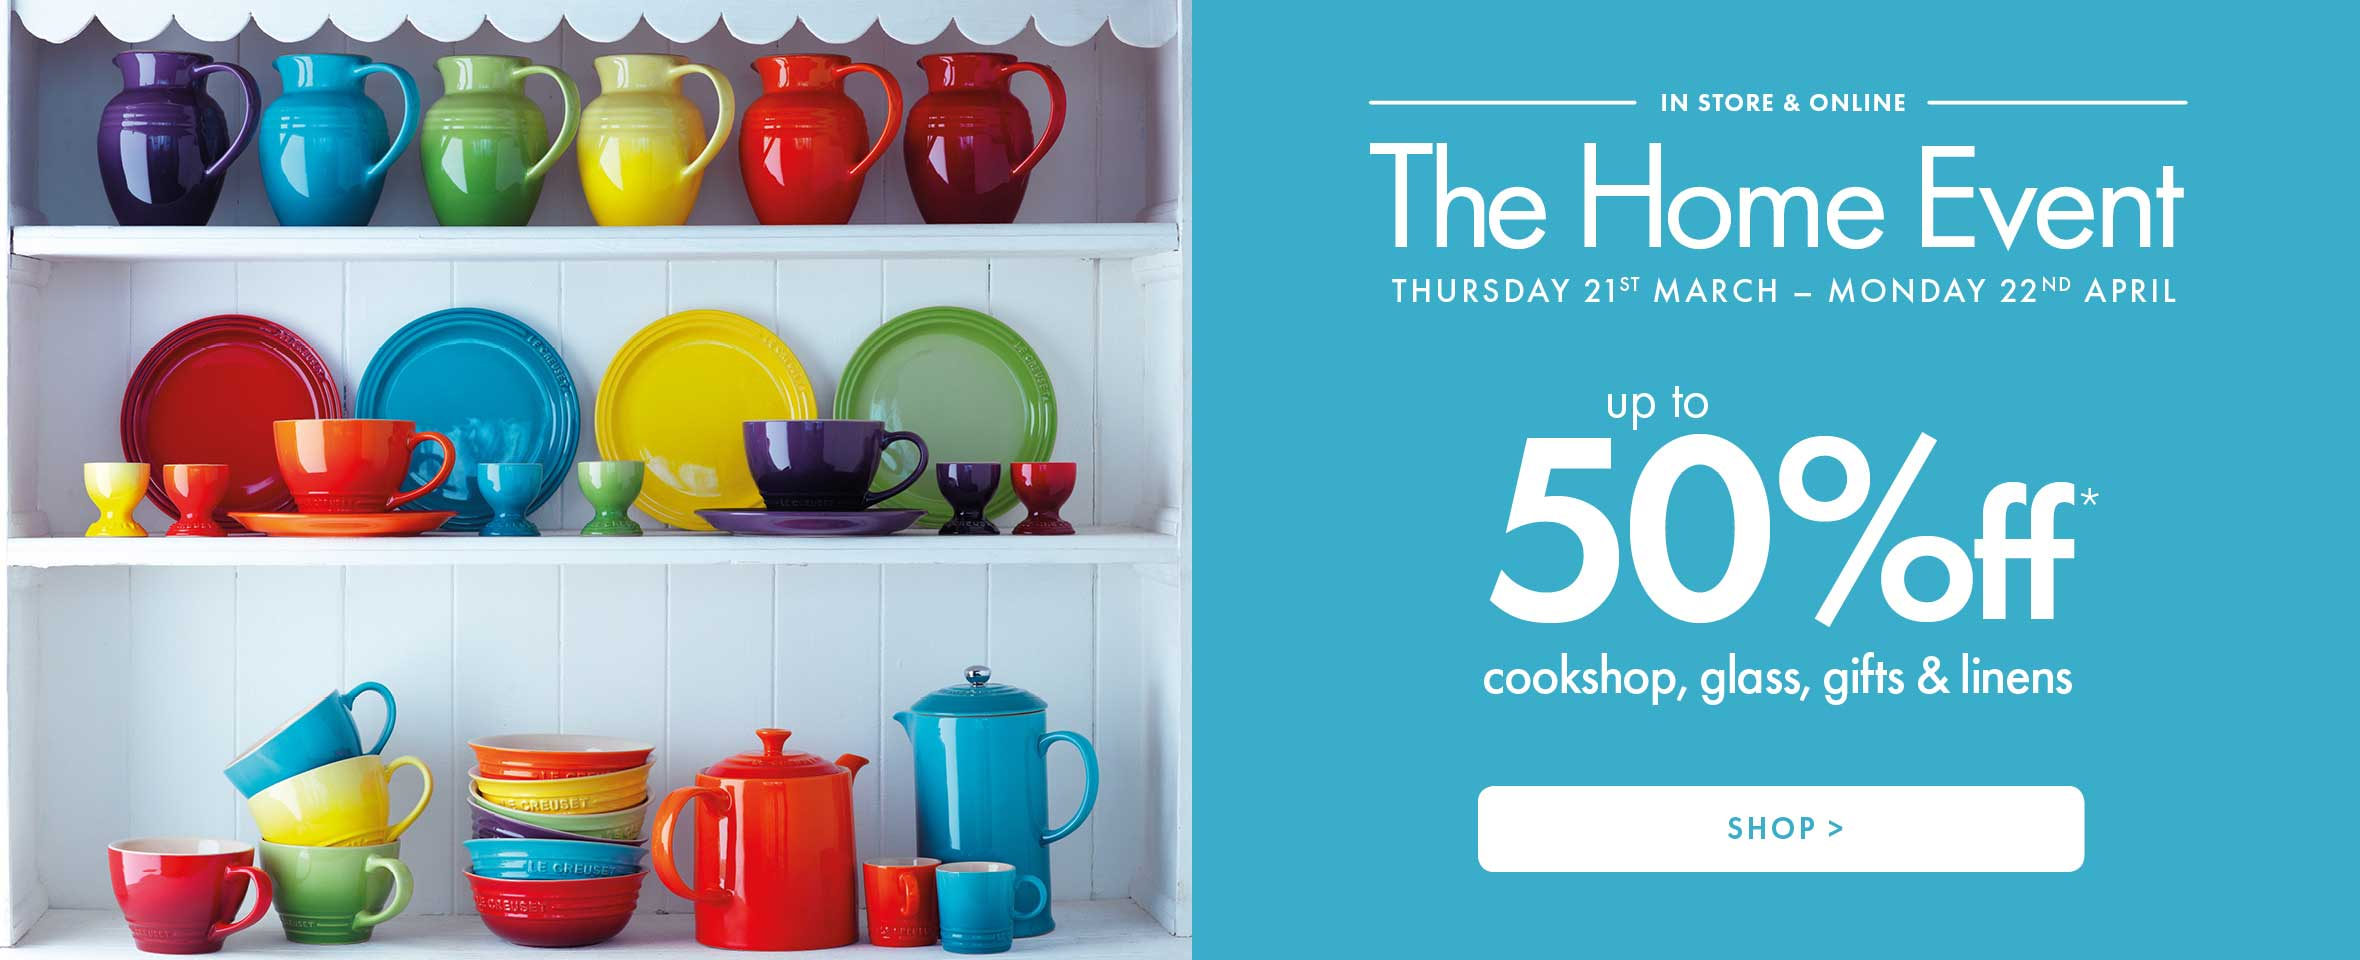 Home Event at Hoopers with up to 50% off* cookshop, glass, gifts and linens